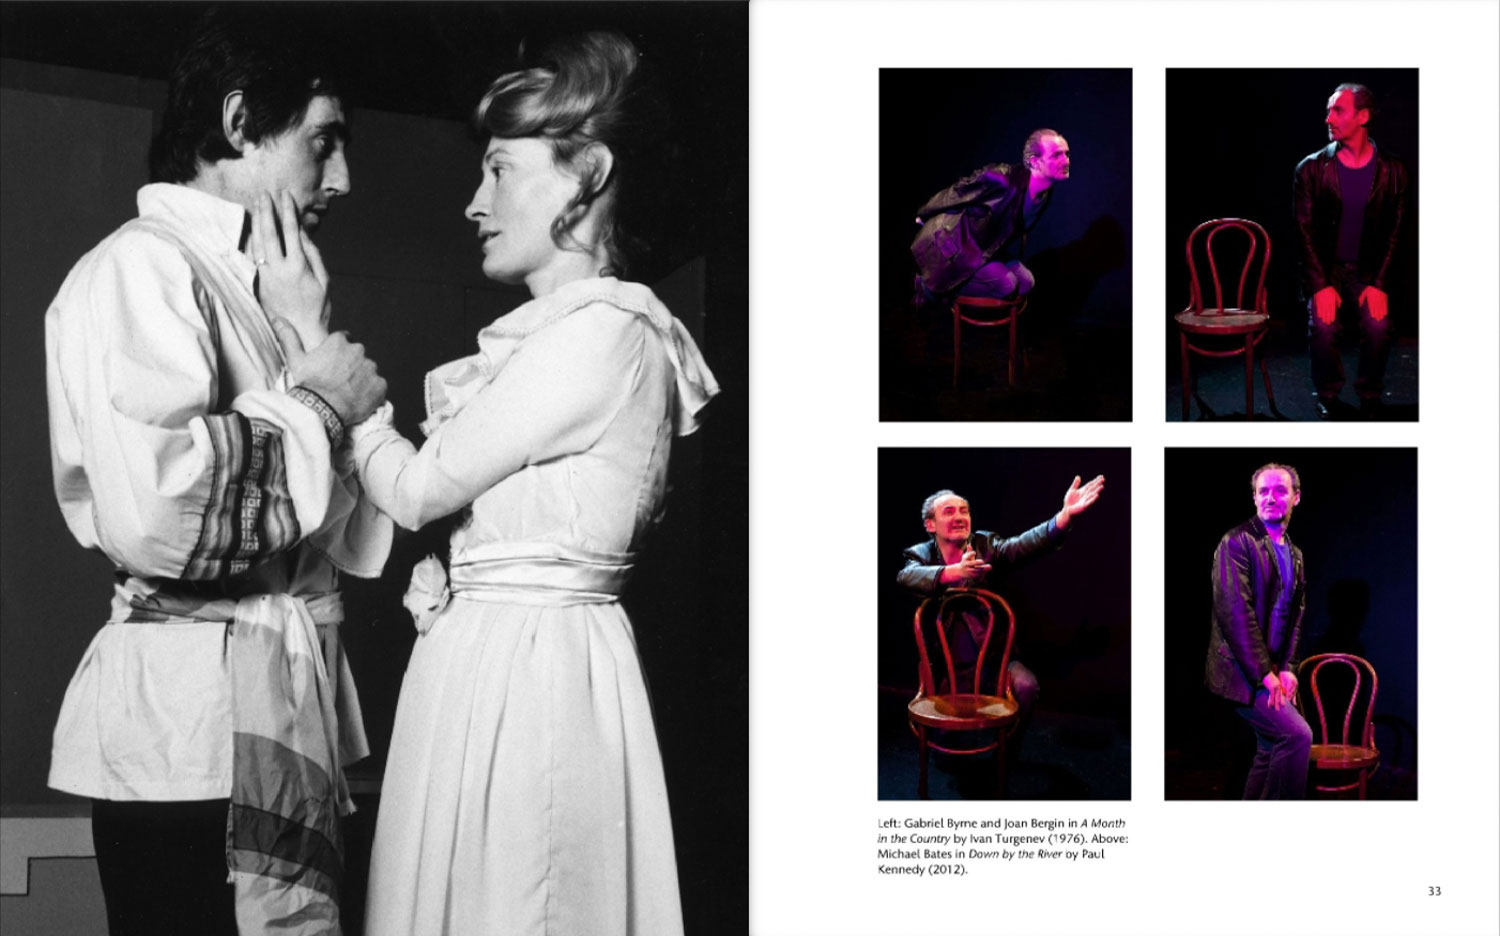 Doublepage layout of theatre archive (review) actors looking emotional